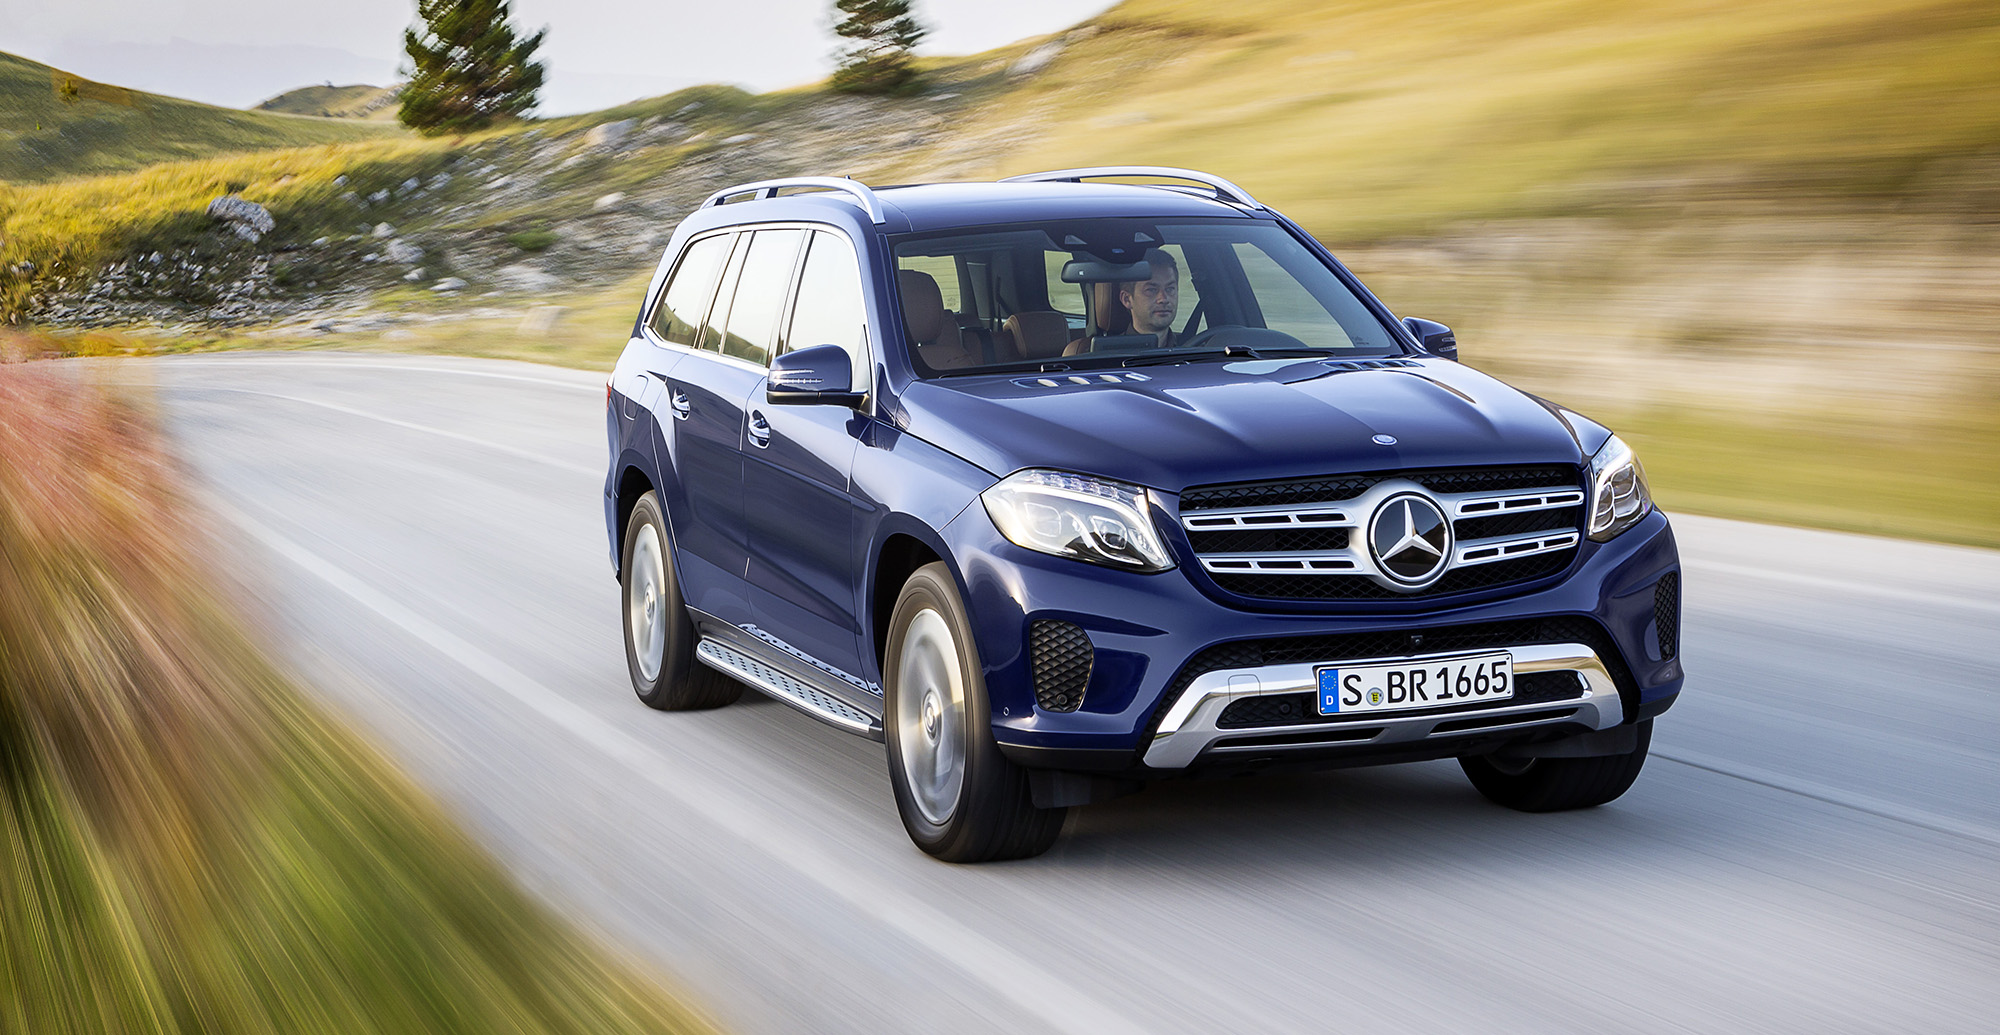 2016 Mercedes Benz GLS Revealed Big GL Gets New Name New